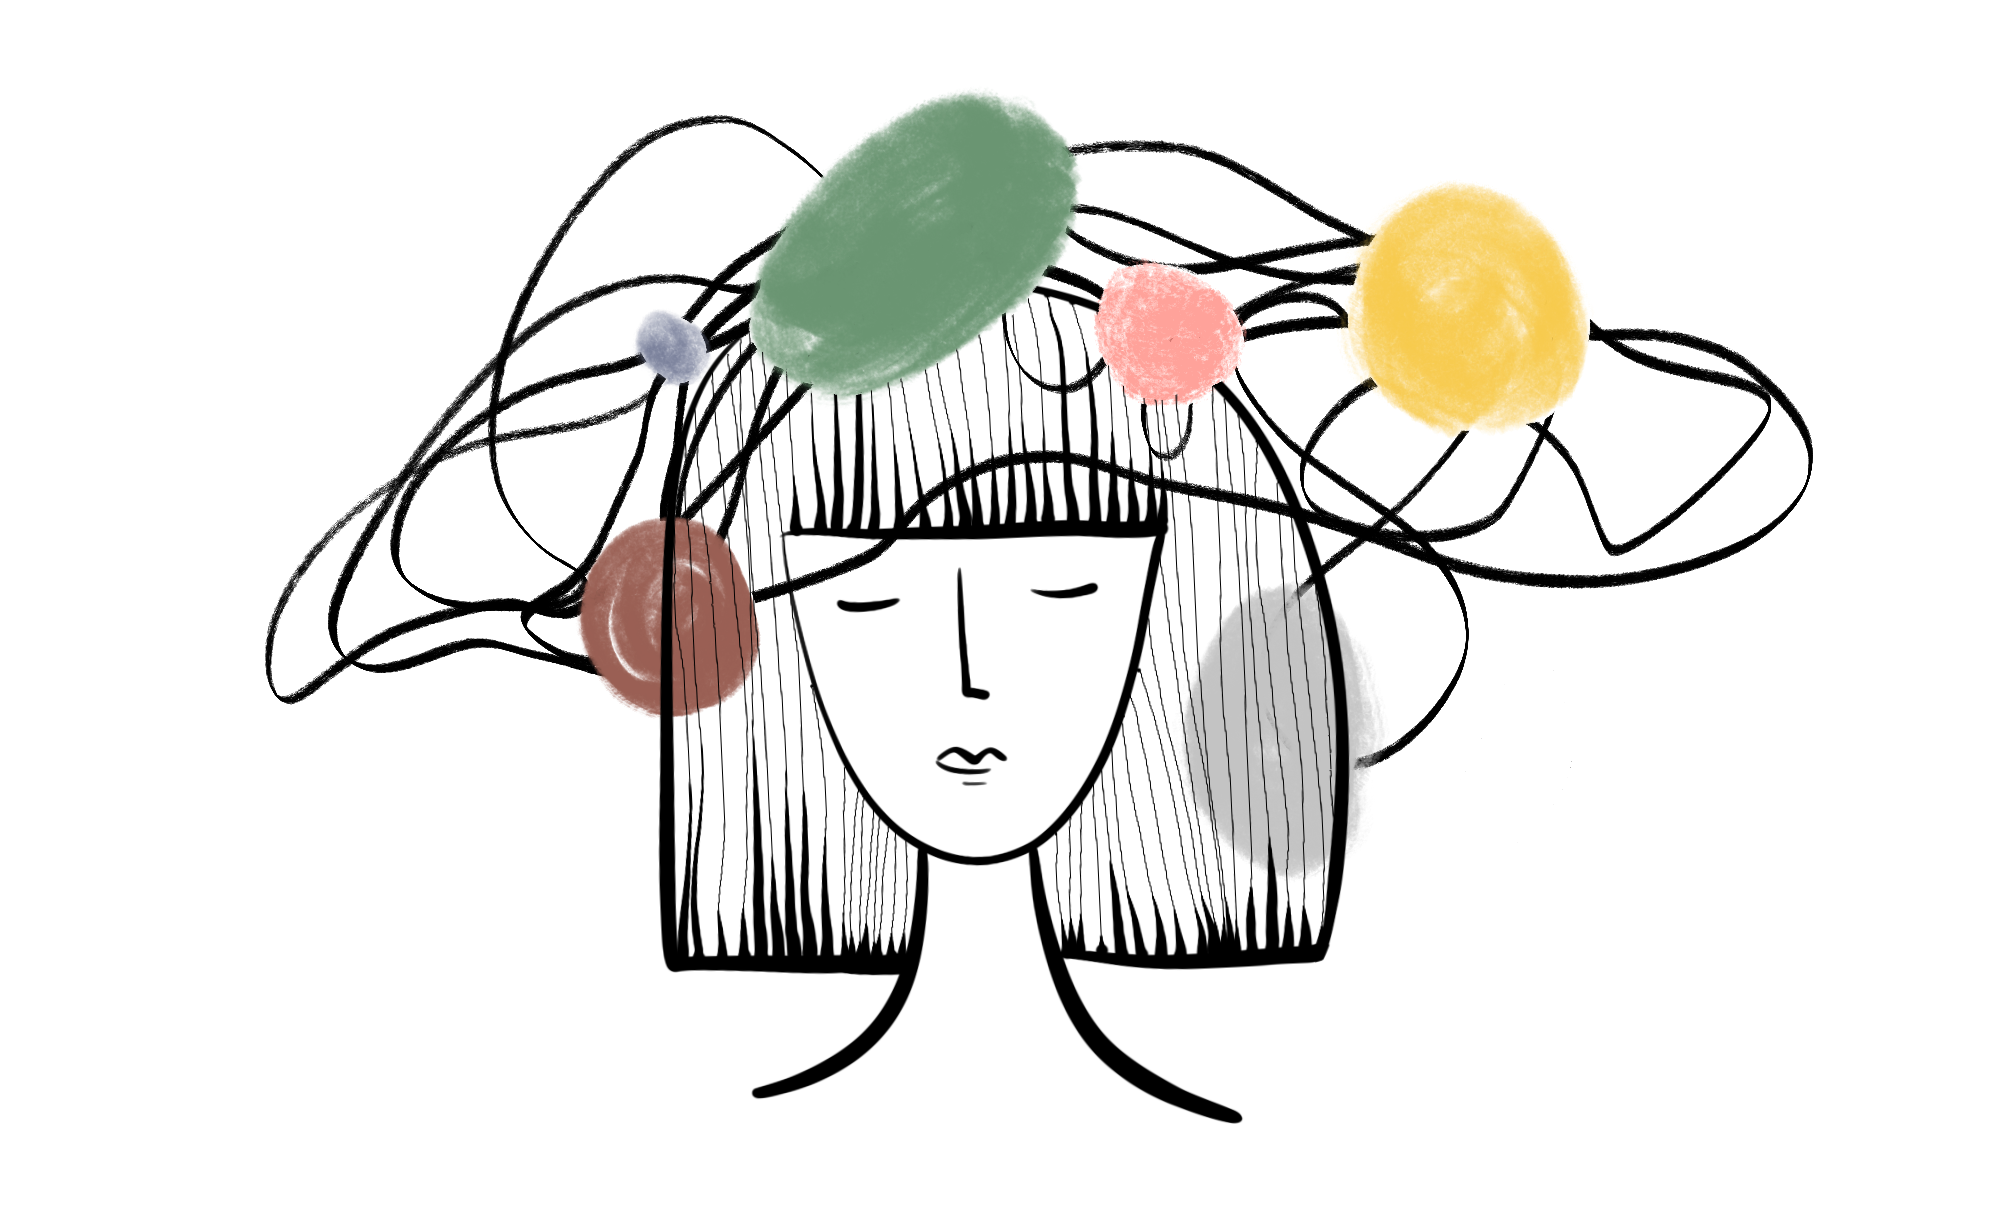 An illustration of a woman's face surrounded by abstract distractions